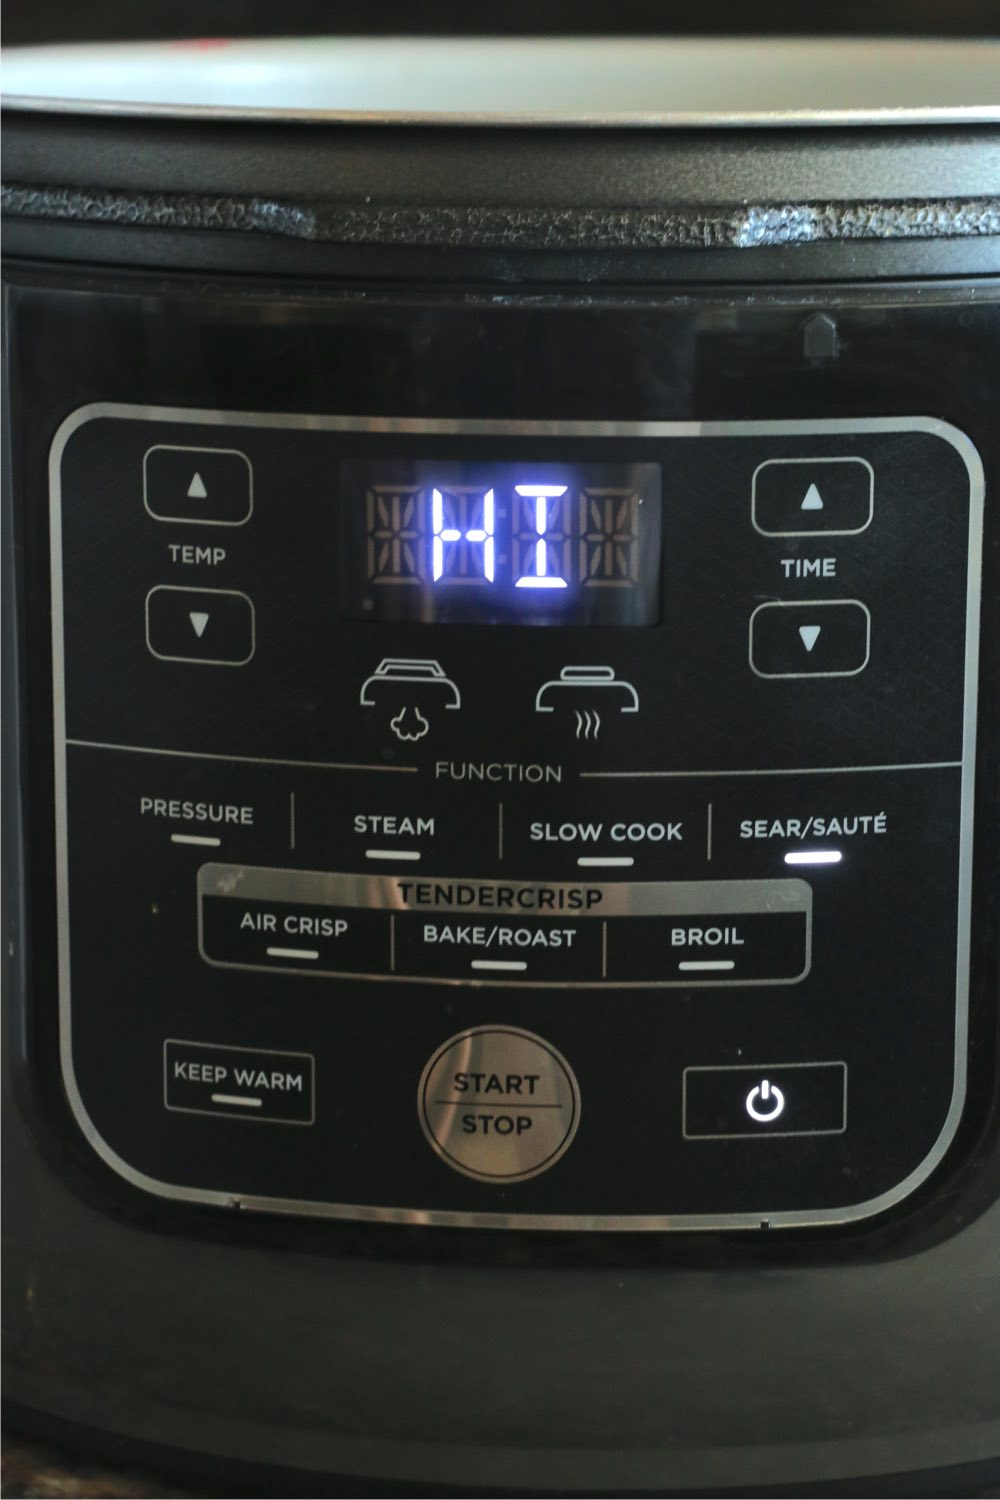 Front of a Ninja Foodi pressure cooker